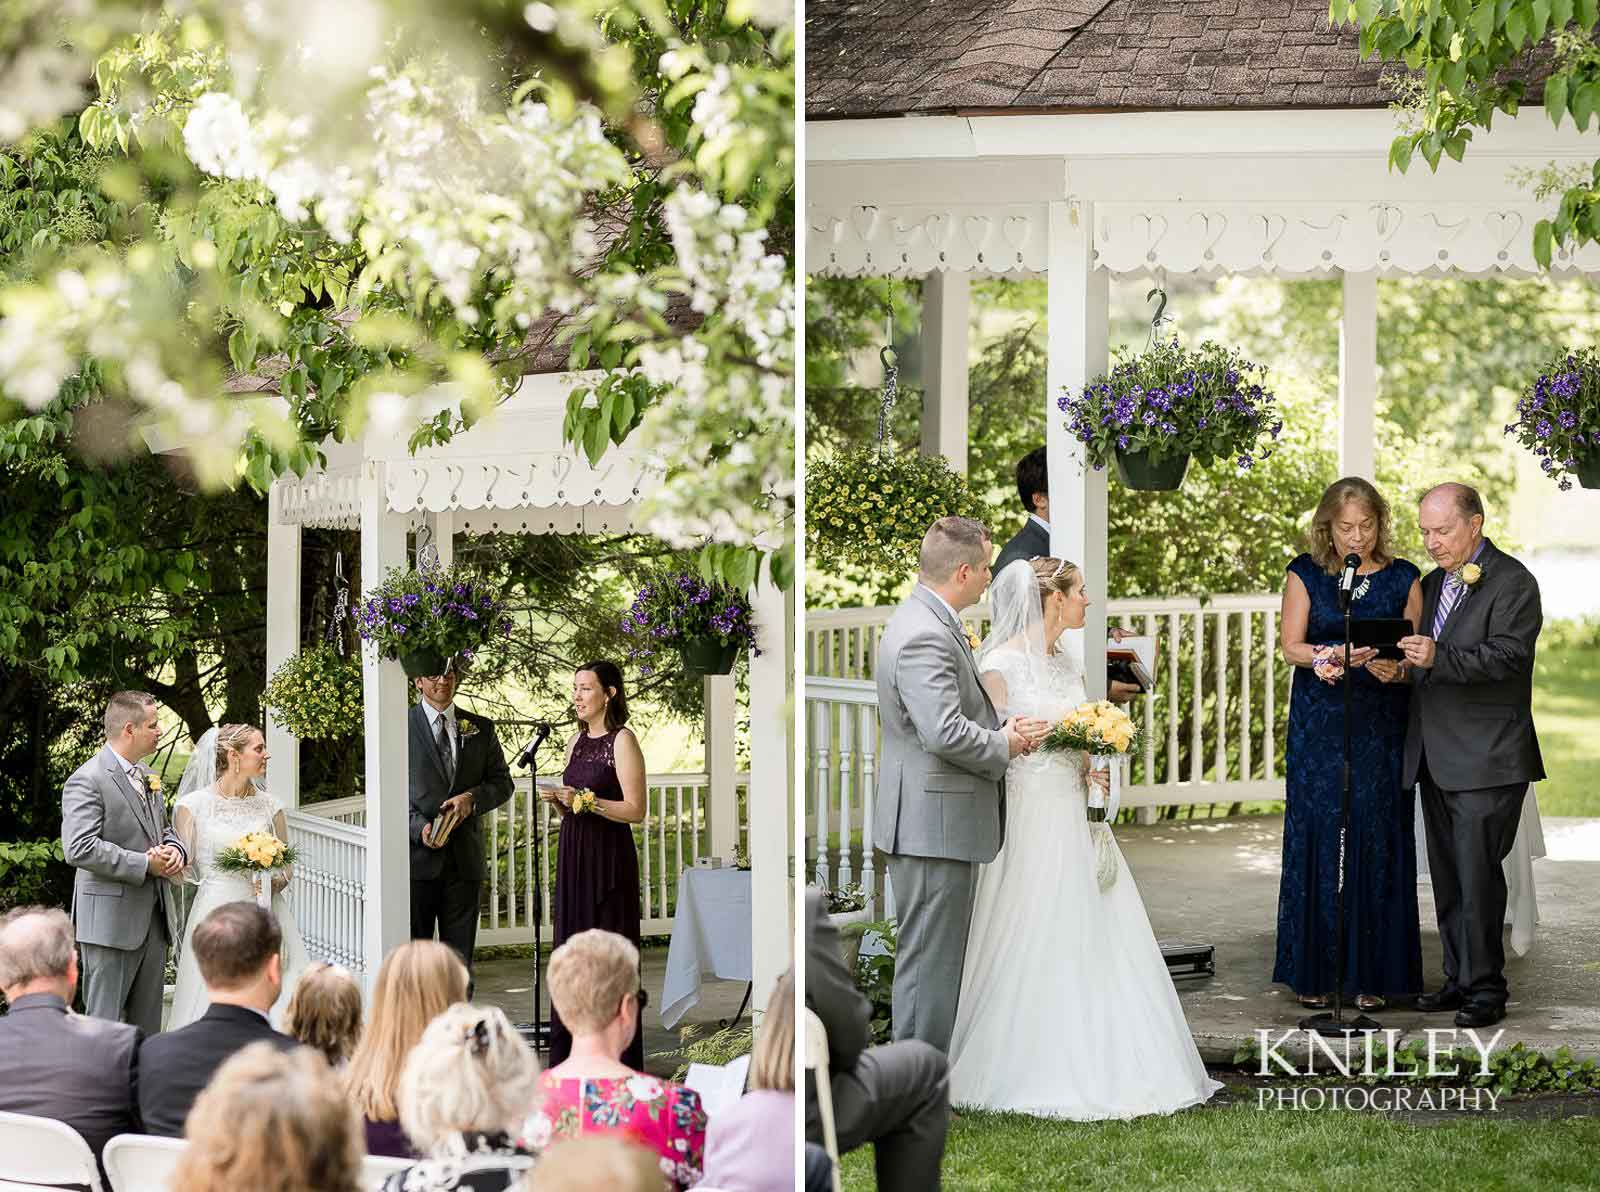 28-Plantation-Party-House-springtime-wedding-Rochester-NY-Kniley-Photography.jpg